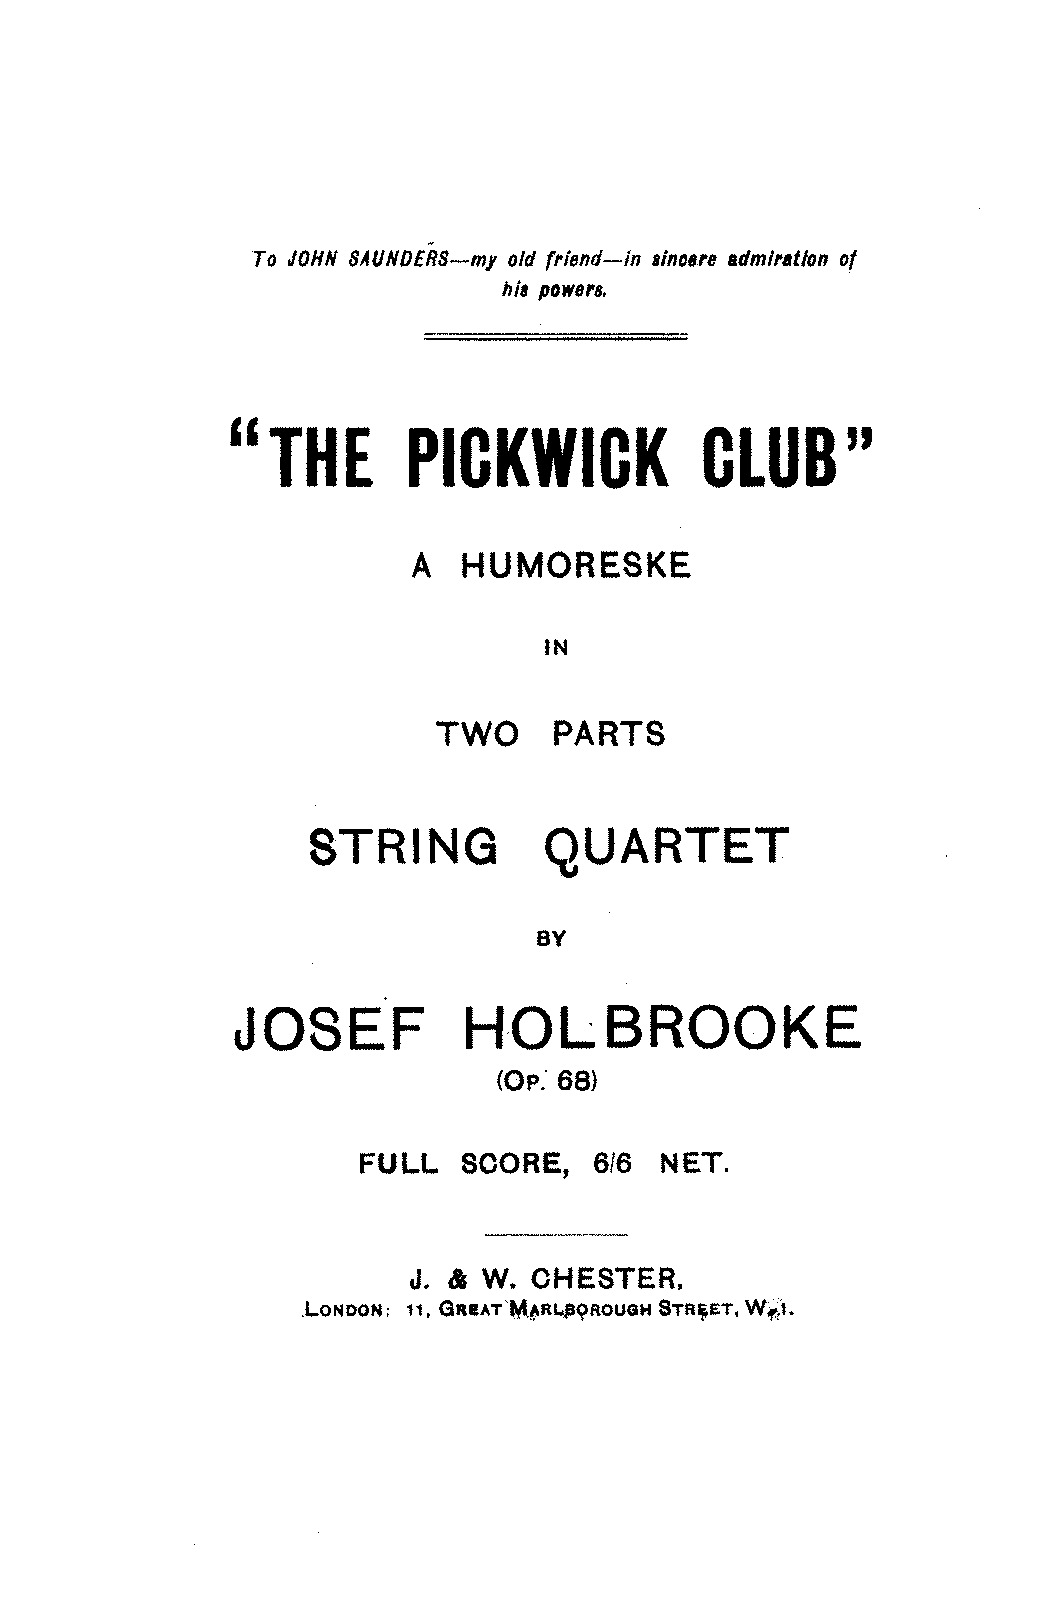 PMLP58243-Holbrooke - The Pickwick Club - A Humoreske in Two Parts for String Quartet Op 68.pdf